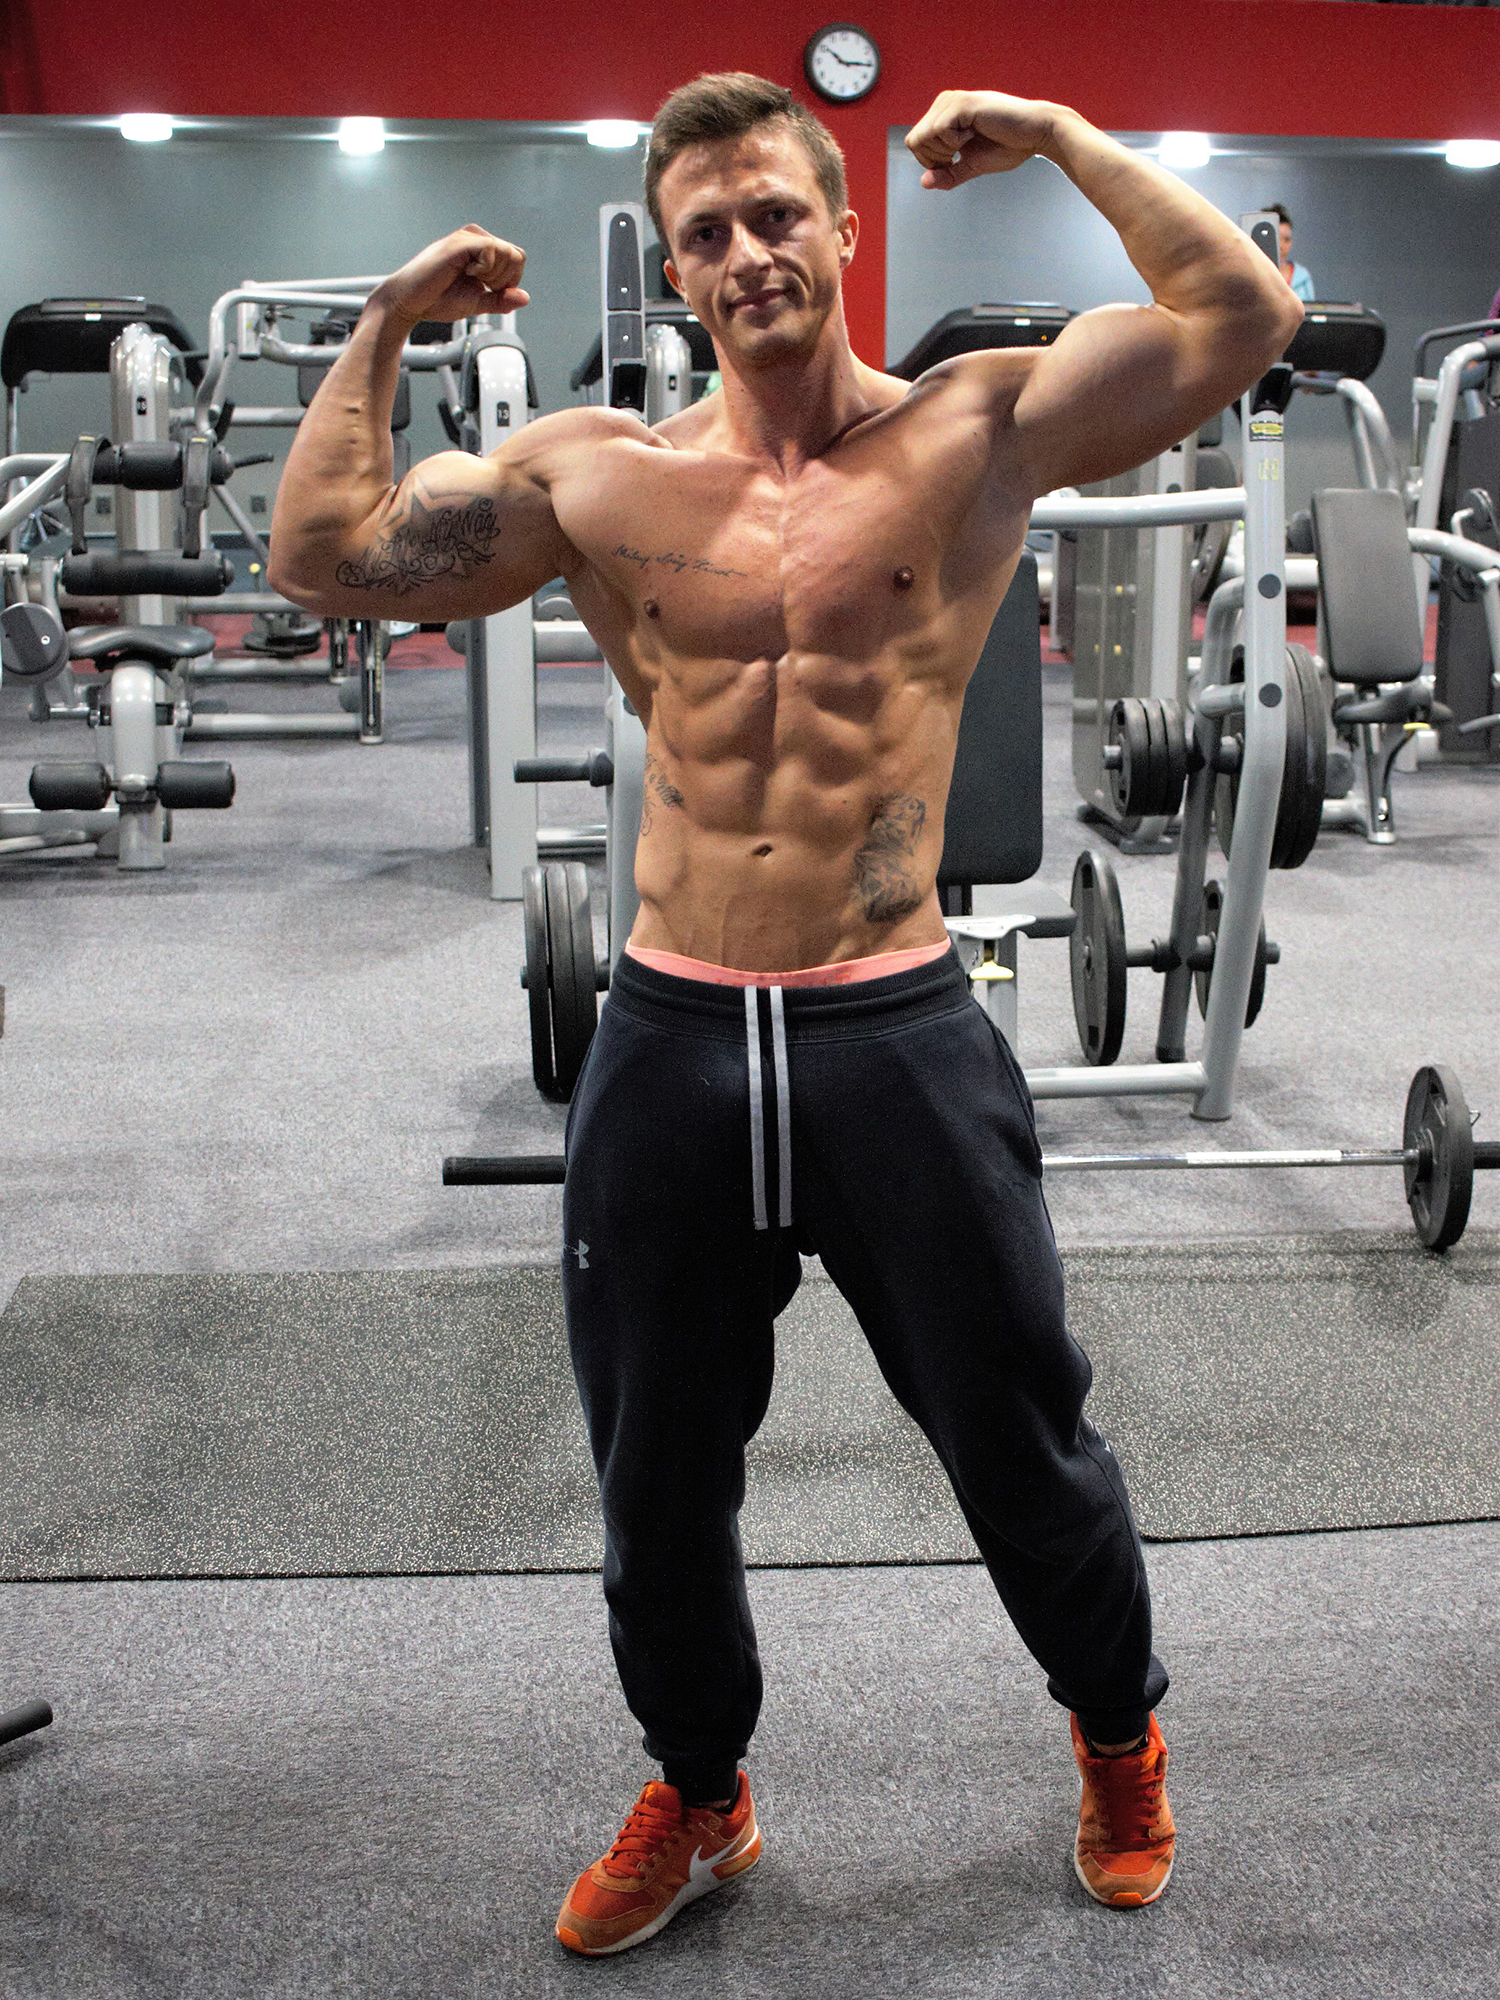 Muscular Man Flexing At The Gym